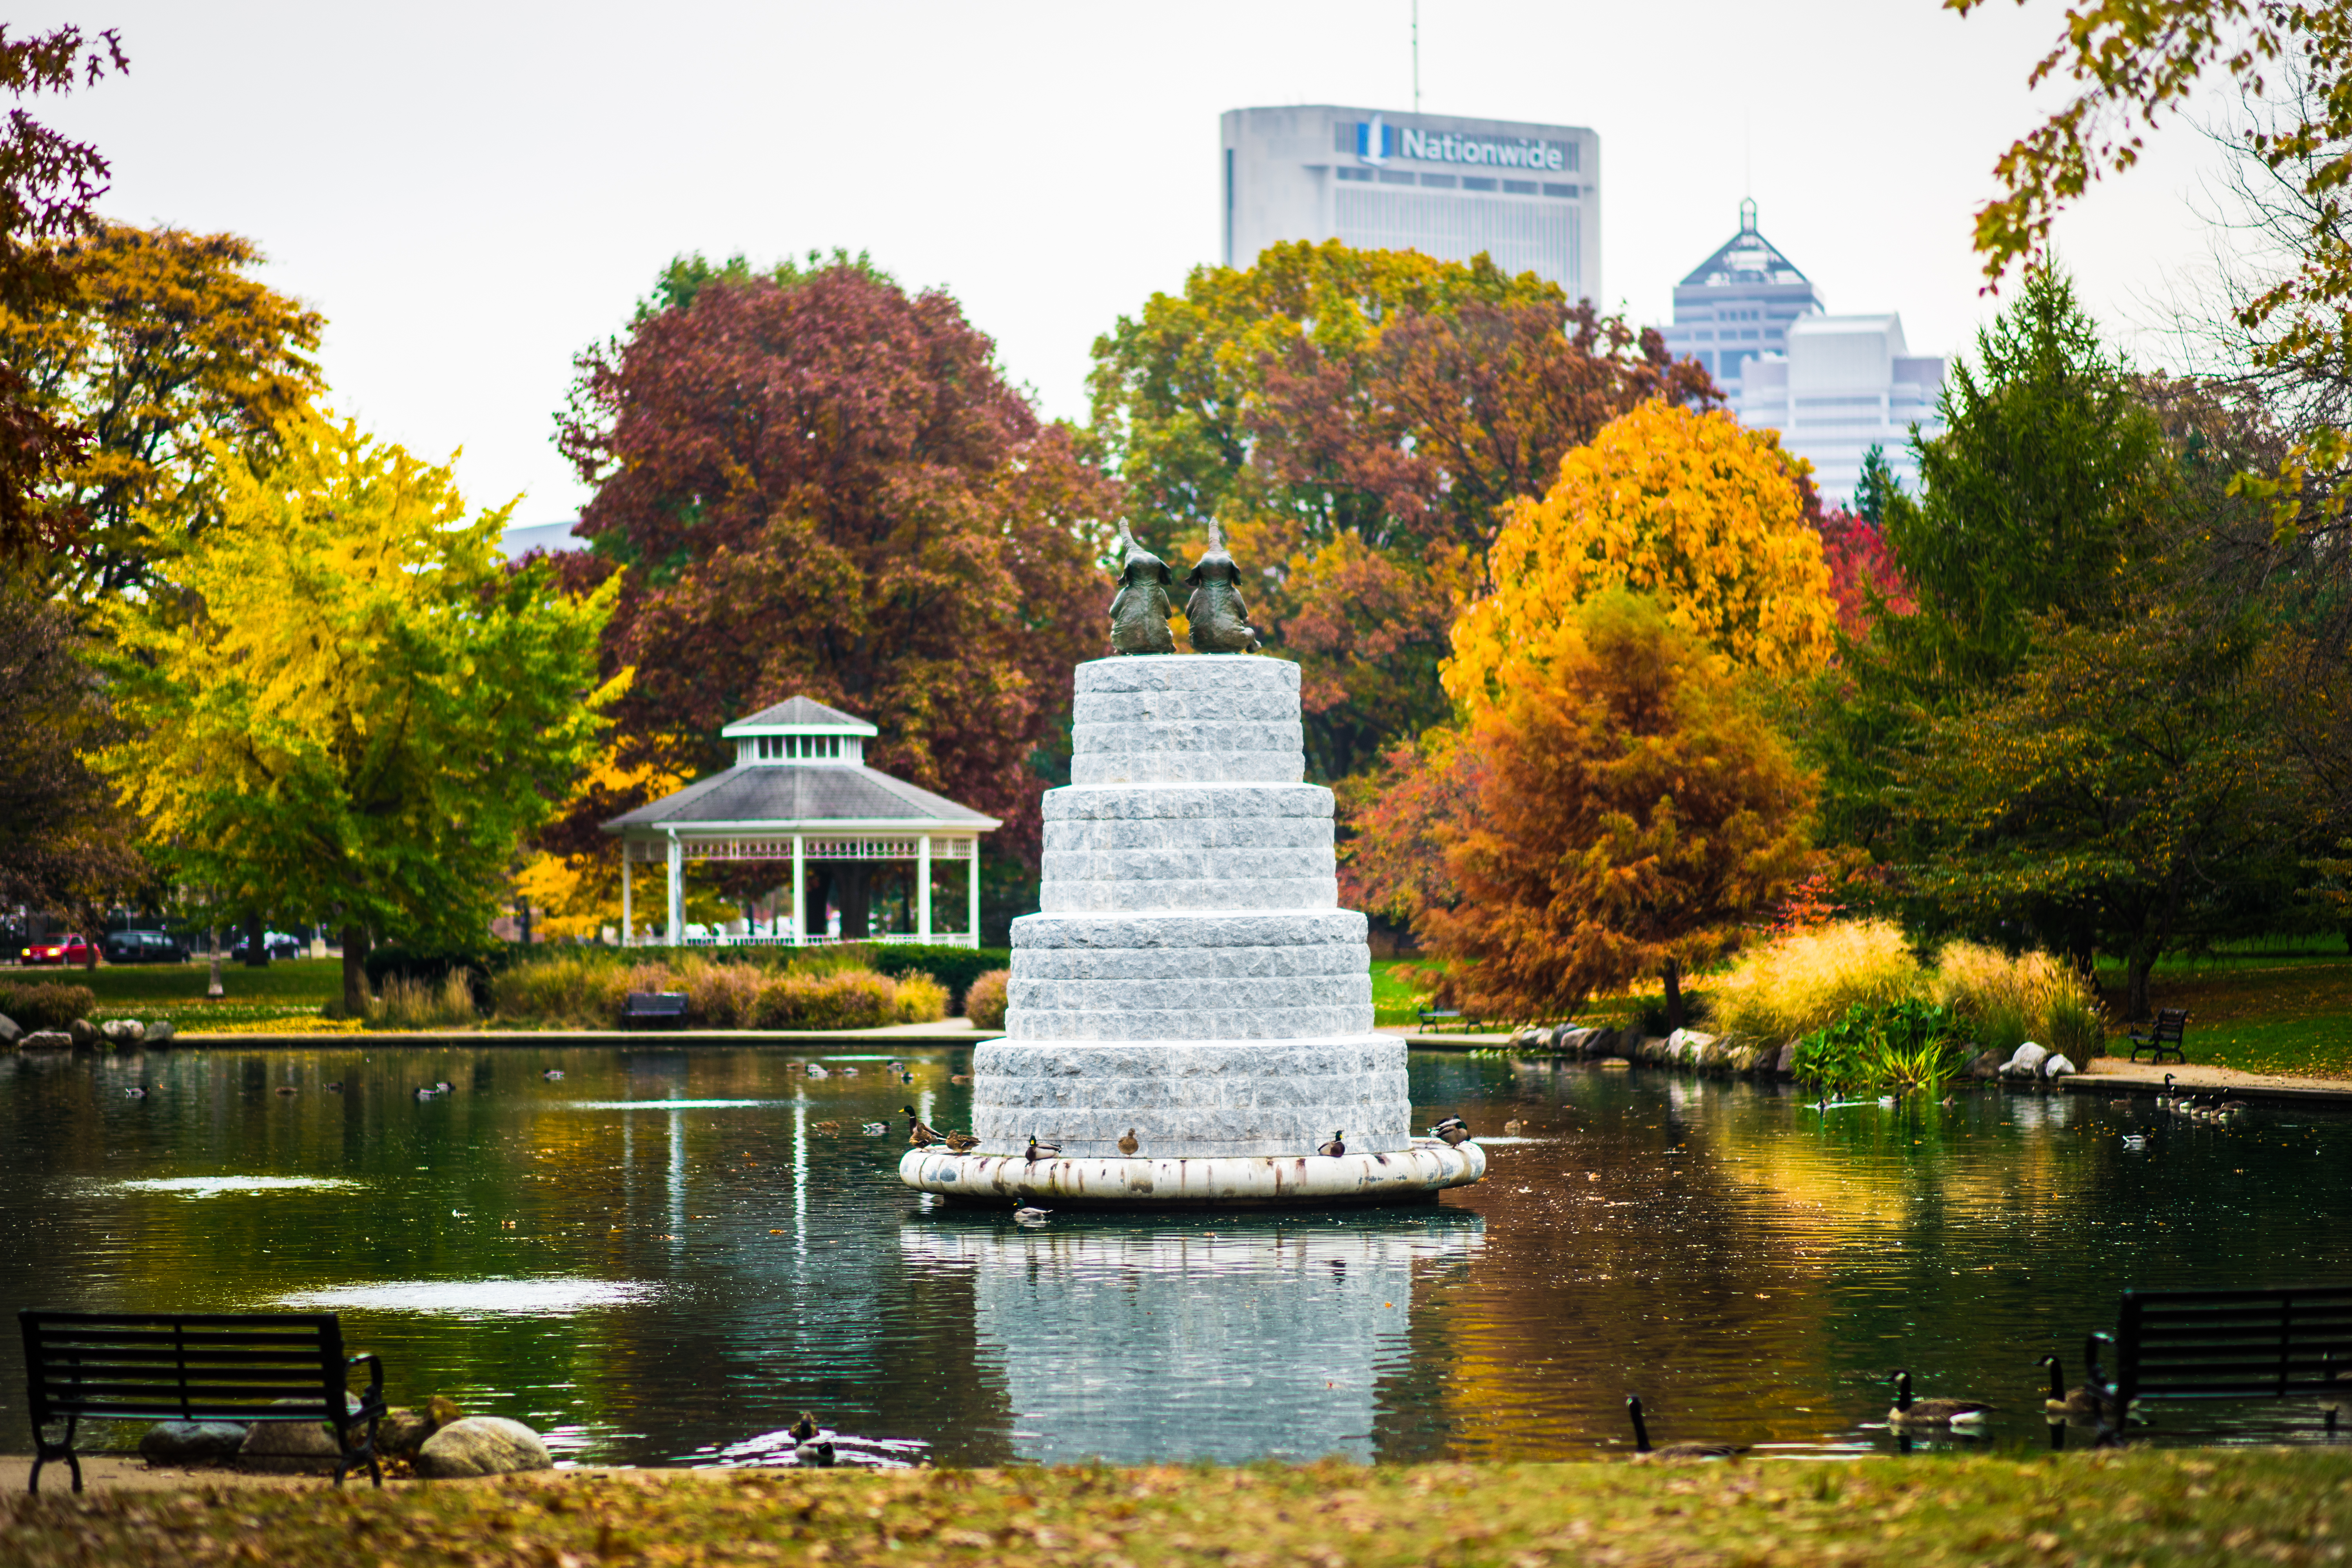 Goodale Park's Elephant Fountain in the fall, autumn of Columbus, Ohio. Located in Columbus, Ohio, Lykens Companies serves Columbus, Ohio's urban core with an eye toward historical preservation and restoration. We are deeply involved in the Short North, Victorian Village, Italian Village, Olde Towne East, and Weiland Park communities. We are a landlord, property management, and property development company. We create the best Short North apartments and rentals: Short North Apartment Rentals and Apartments, Wonder Bread, houses for rent in Columbus, Ohio, Downtown apartments and Downtown Columbus rentals and apartments. For rent!